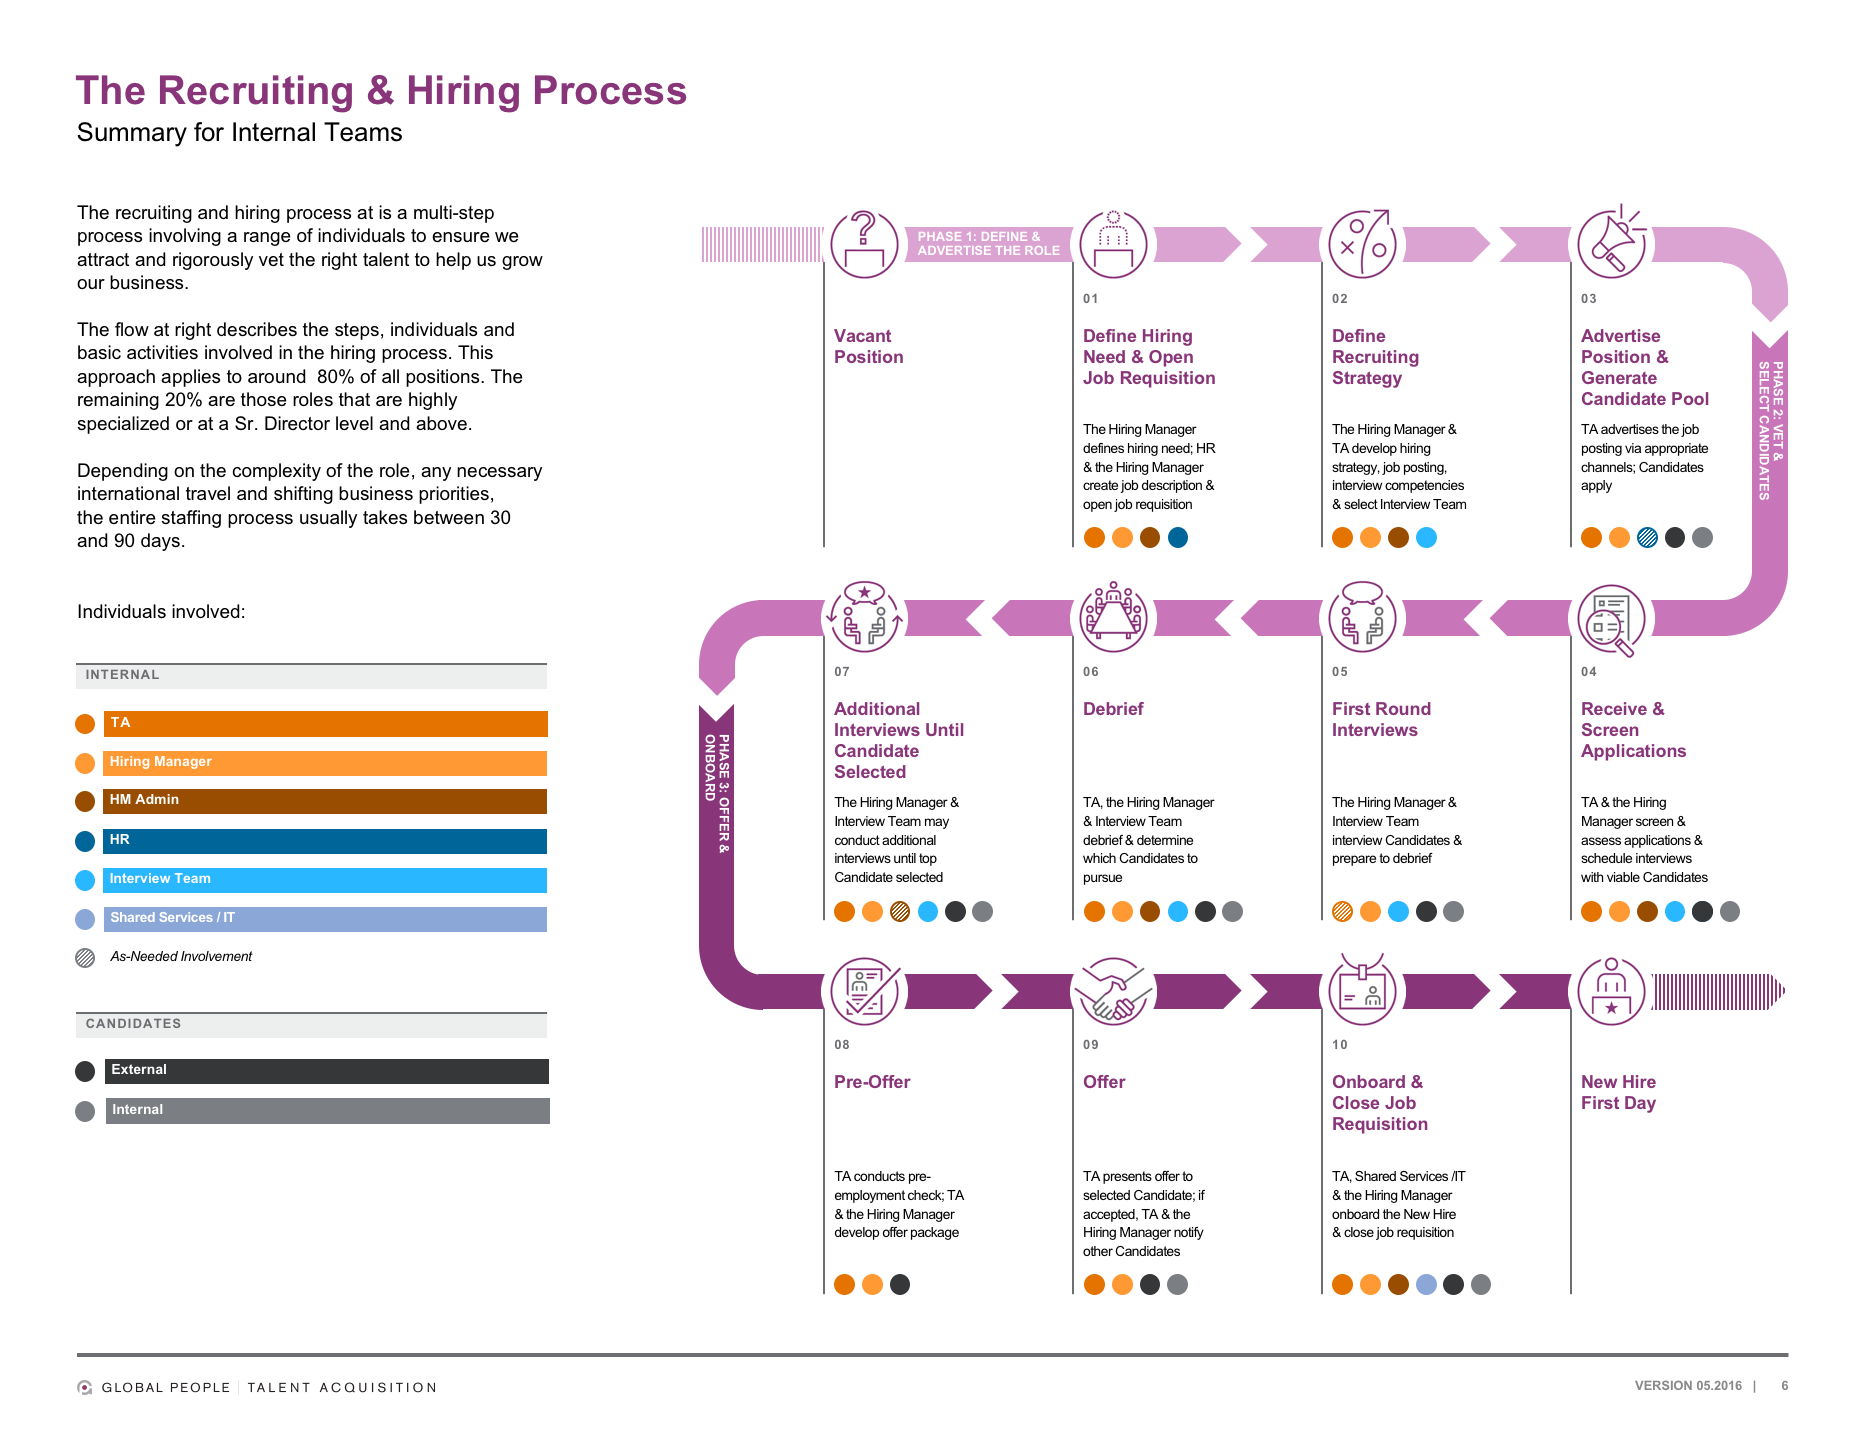 We helped codify the overall HR onboarding flow—from initial recruitment to First Day, along with all participants involved—for a global corporation.